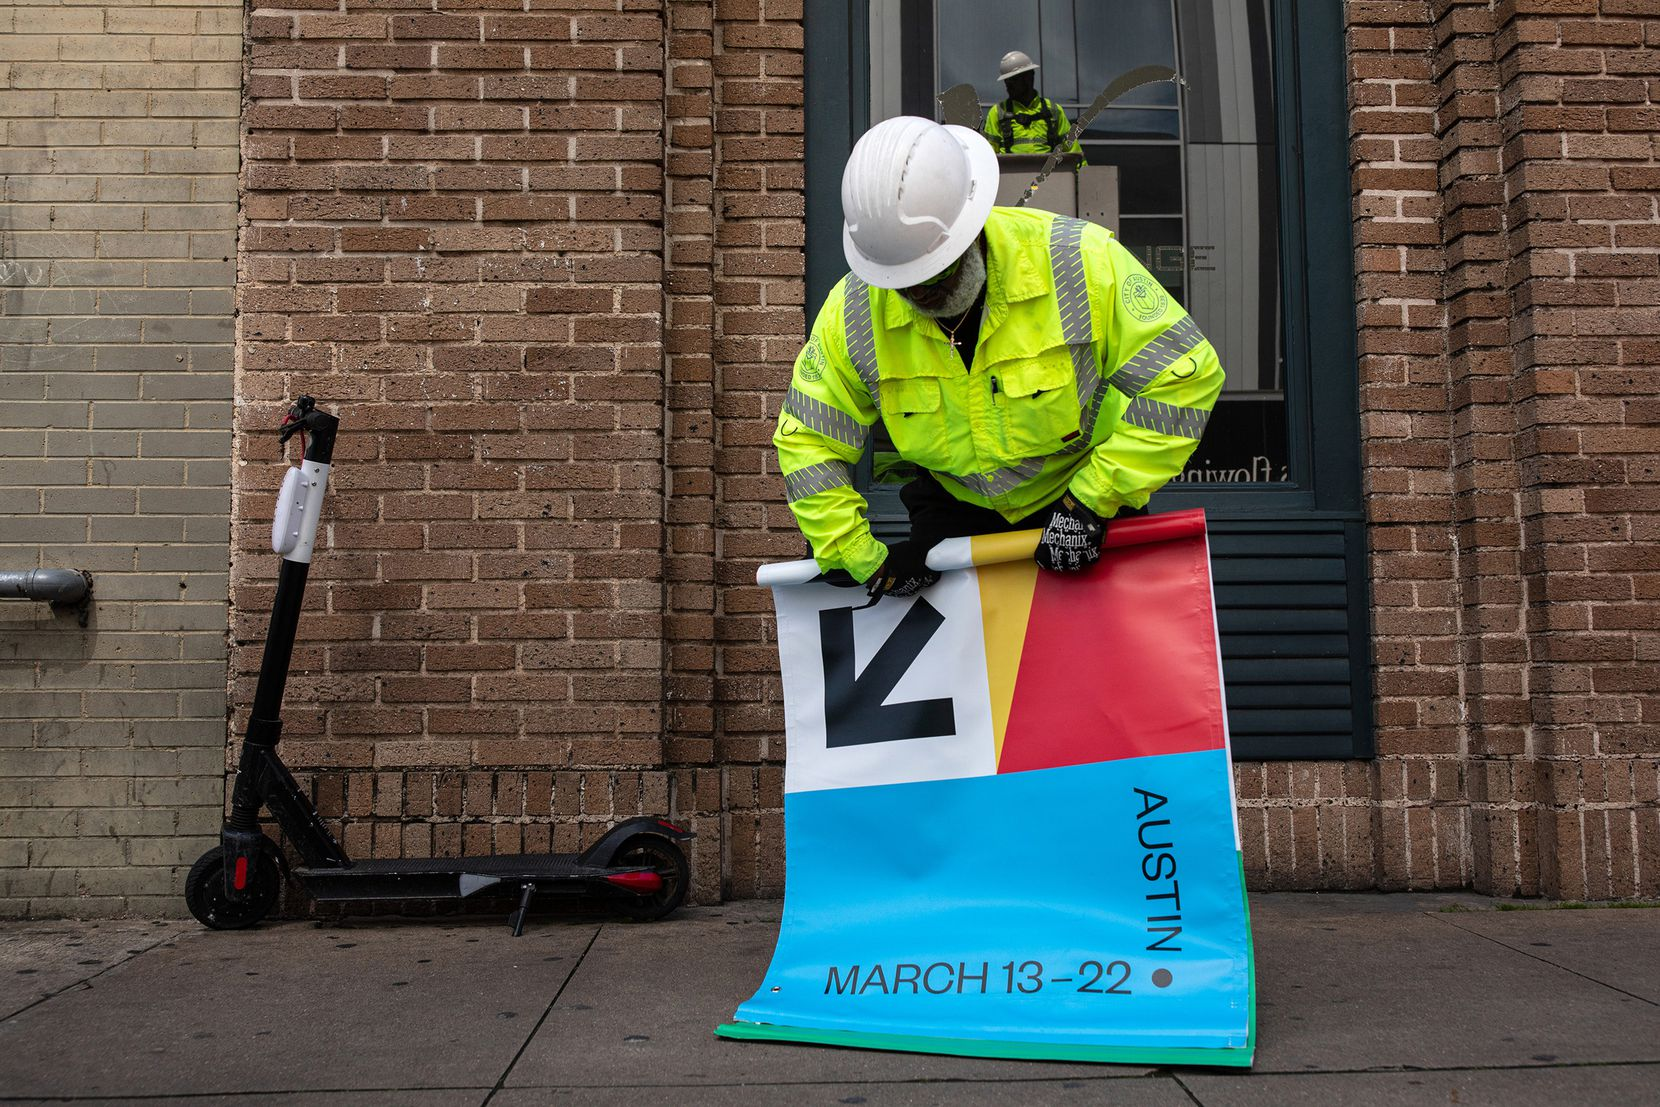 Joseph Alberts rolls up a South by Southwest banner after it was removed from a lamp post in downtown Austin. The 2020 edition of SXSW was canceled in March over coronavirus concerns.